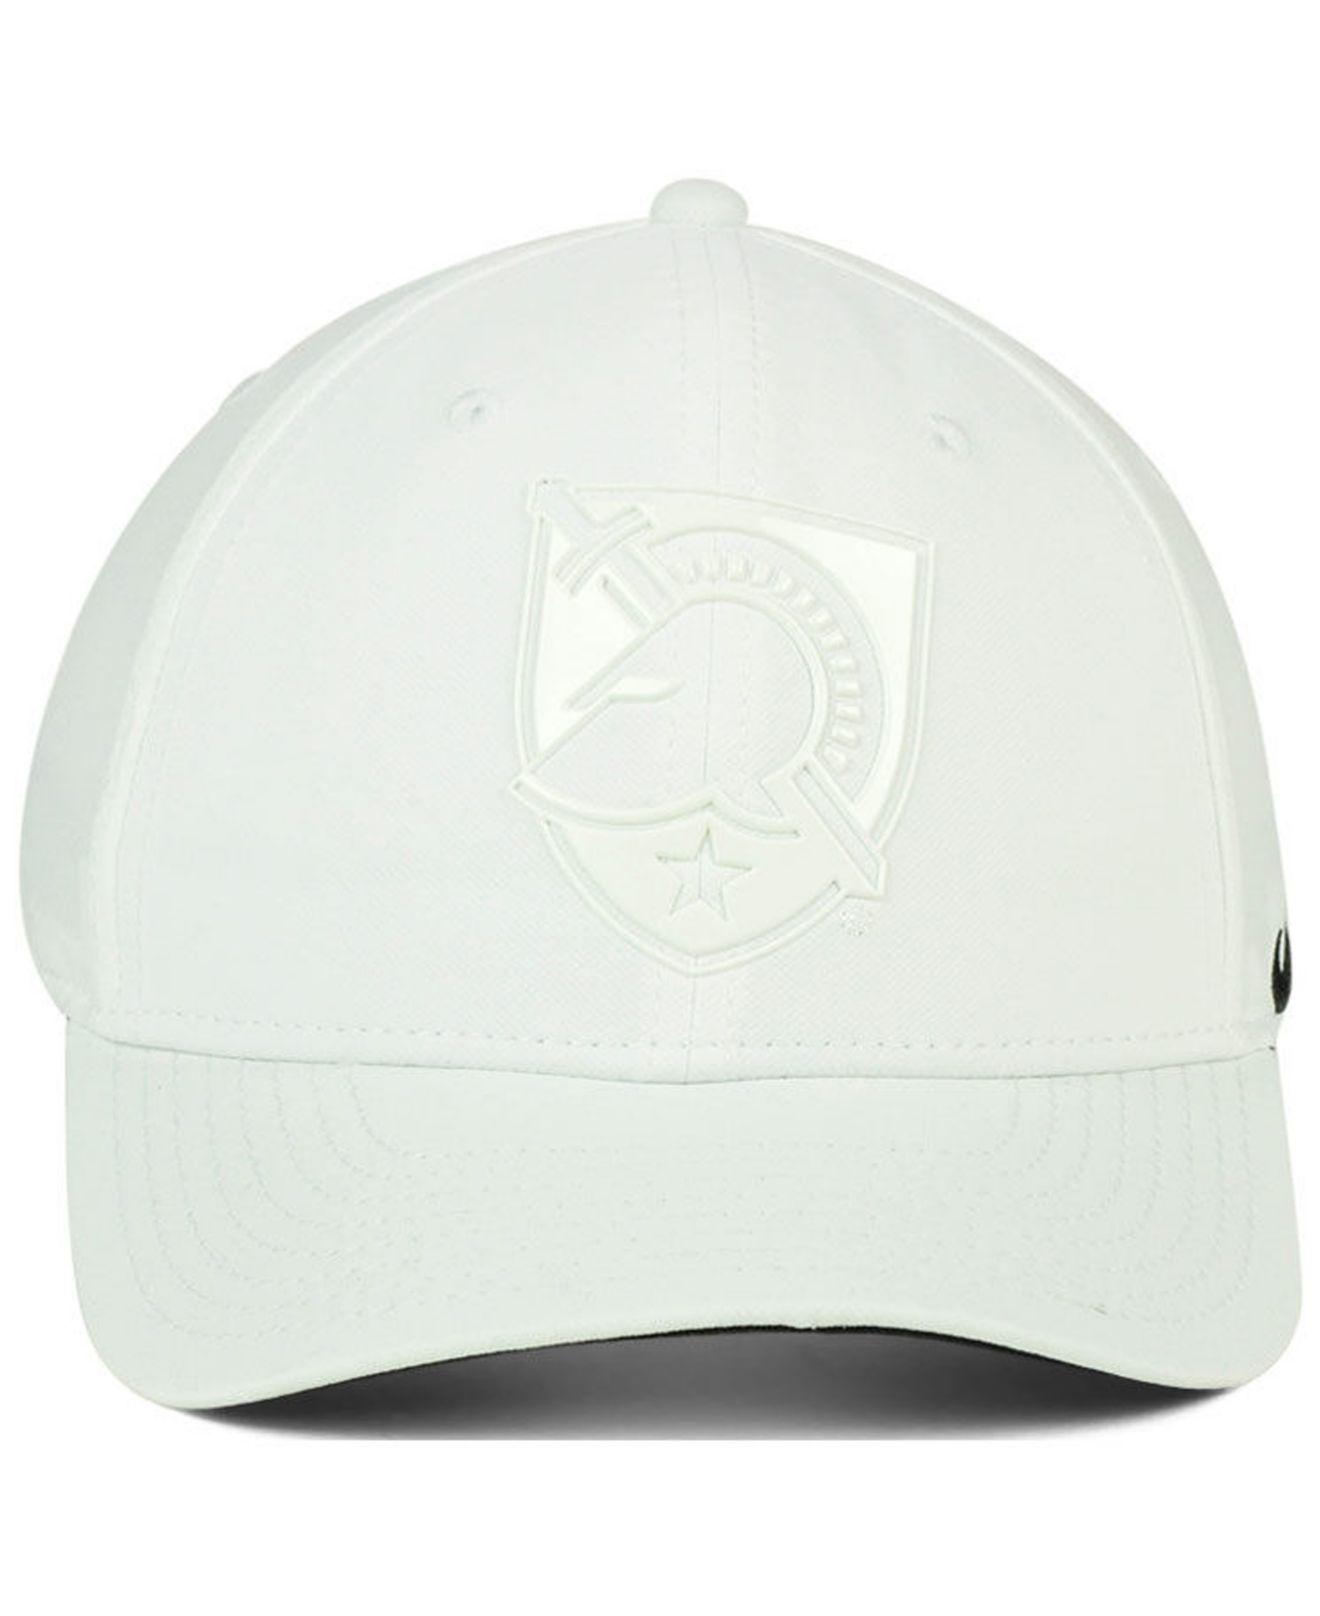 Lyst - Nike Army Black Knights Col Cap in White for Men 266c85a1c847